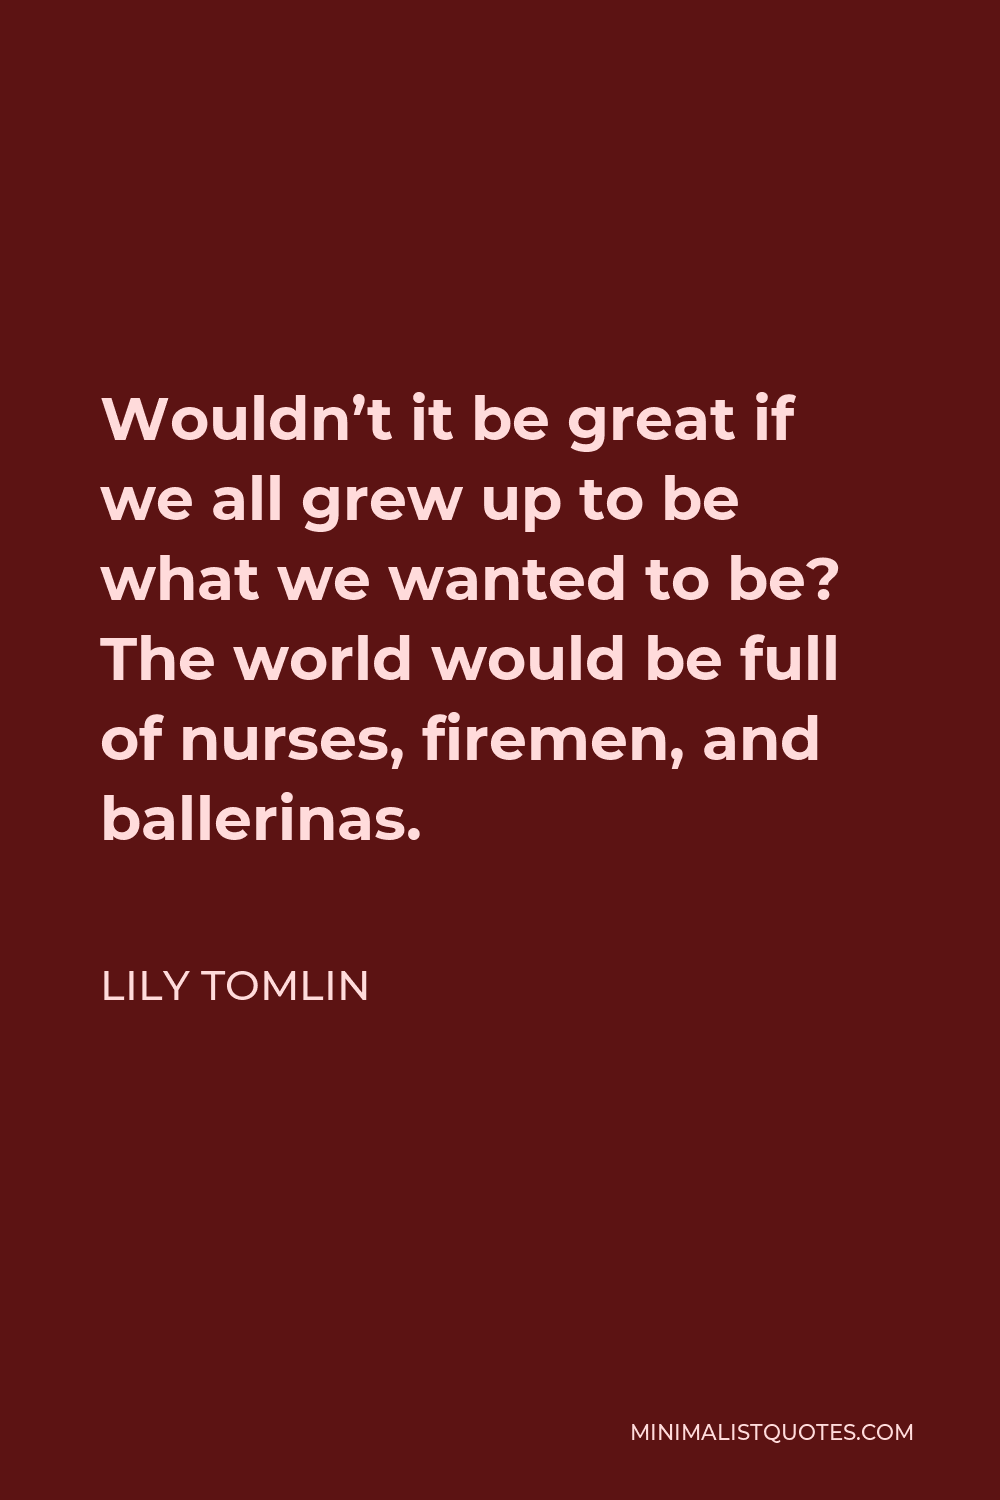 Lily Tomlin Quote - Wouldn't it be great if we all grew up to be what we wanted to be? The world would be full of nurses, firemen, and ballerinas.